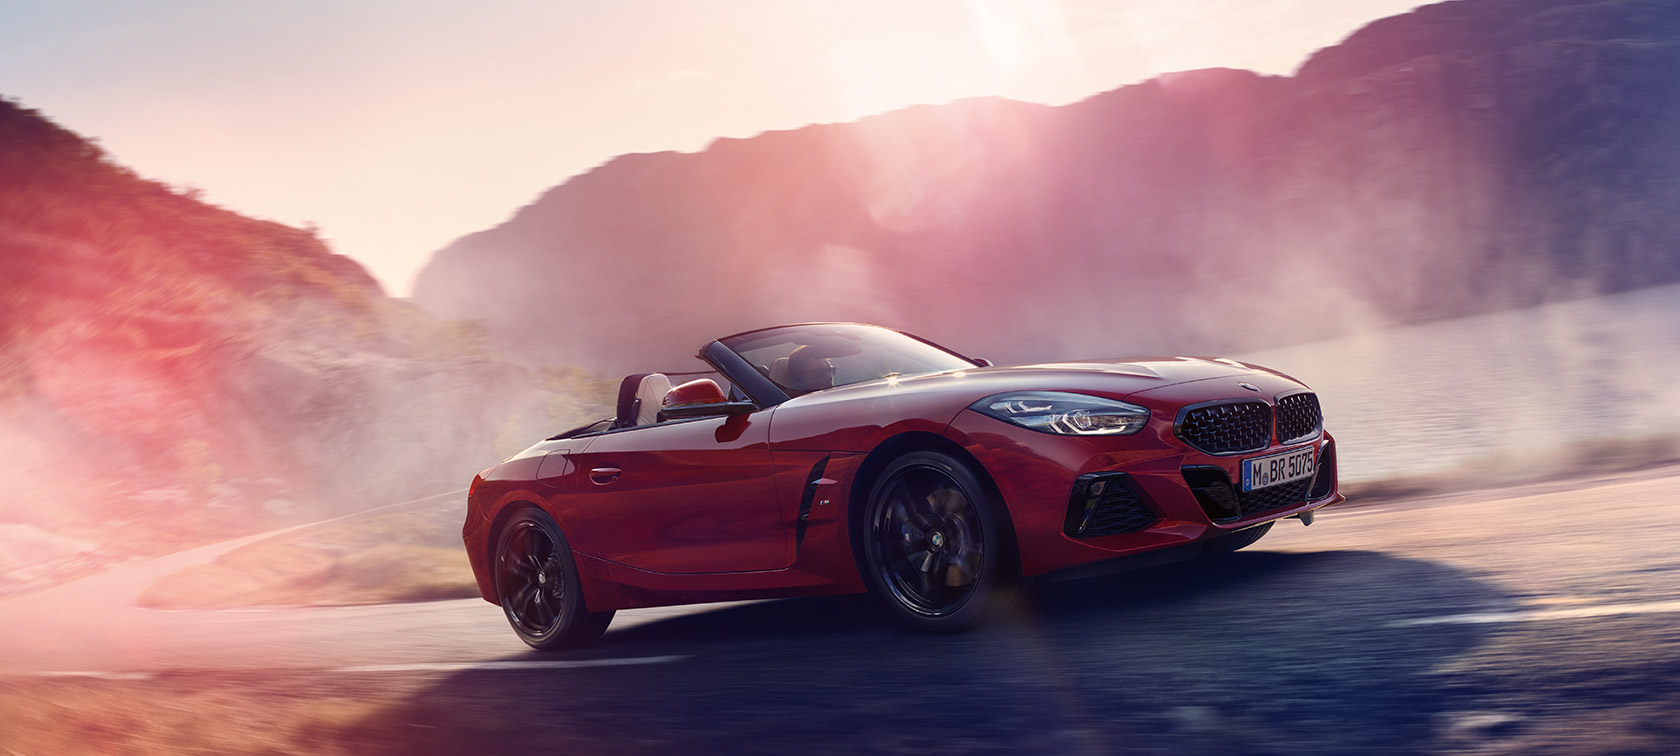 BMW Z4 Roadster urcând un deal